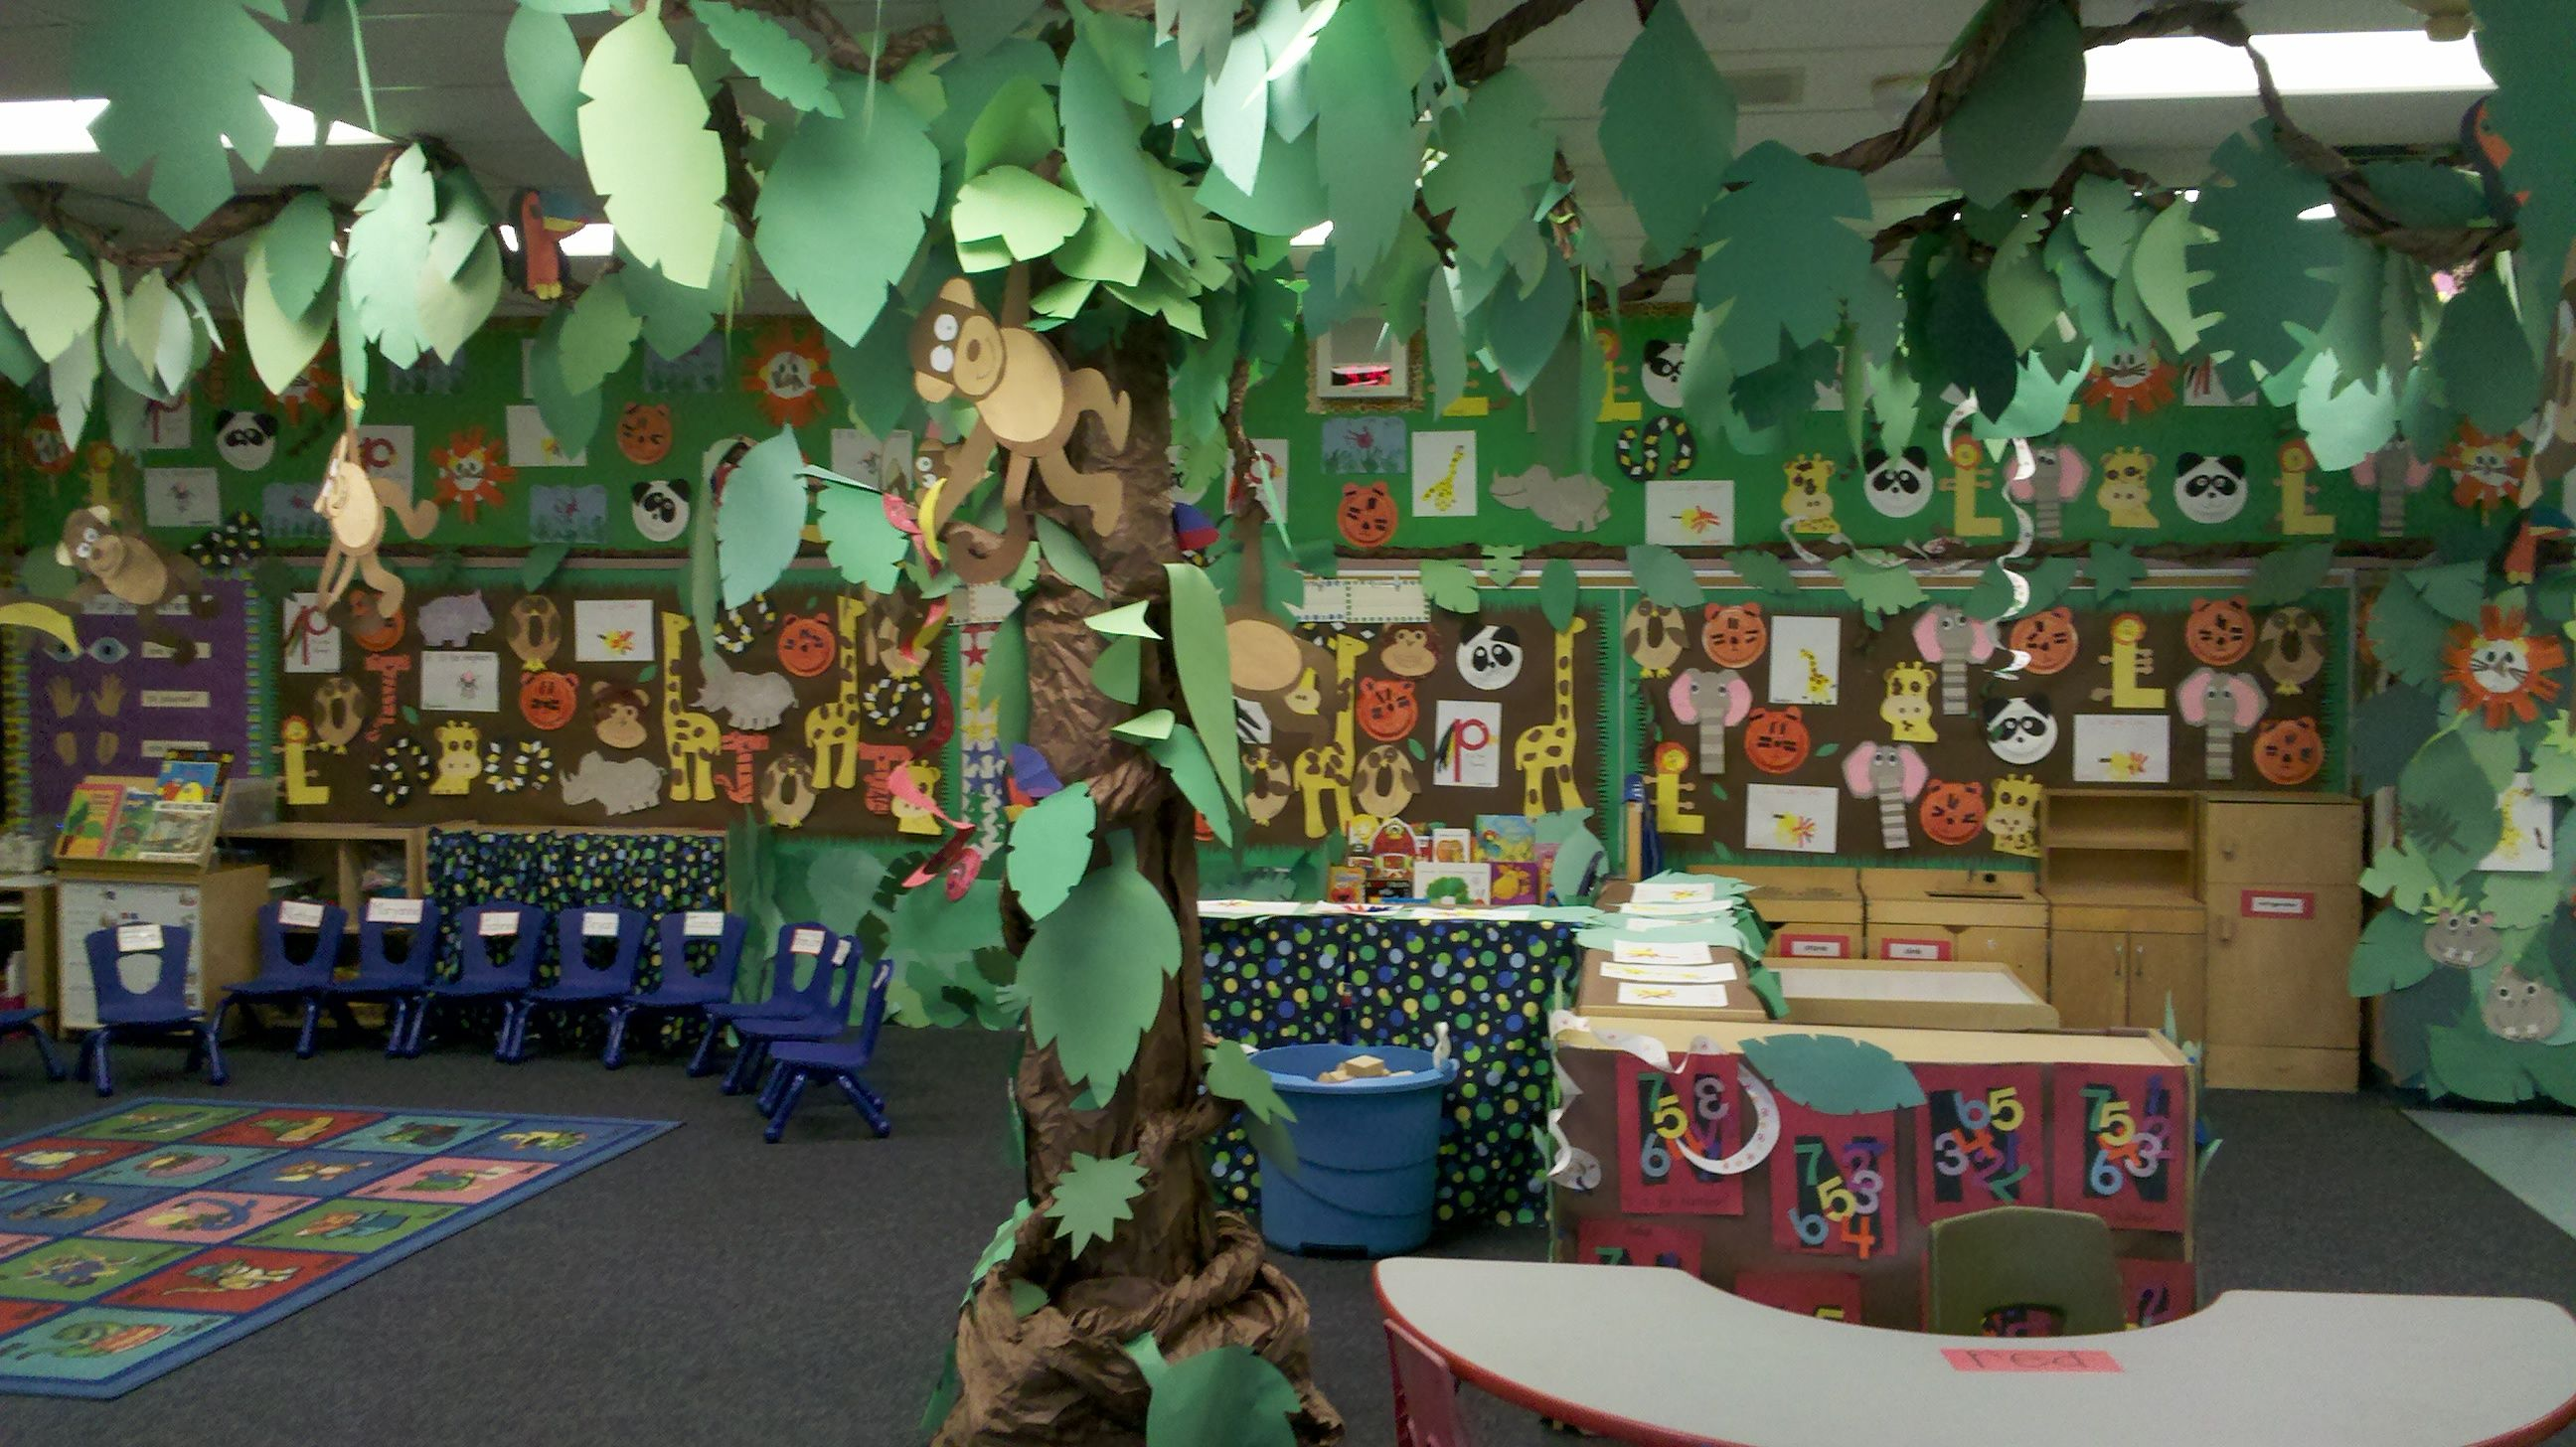 Forest Themed Classroom Decorations ~ Classroom decoration jungle theme day camp